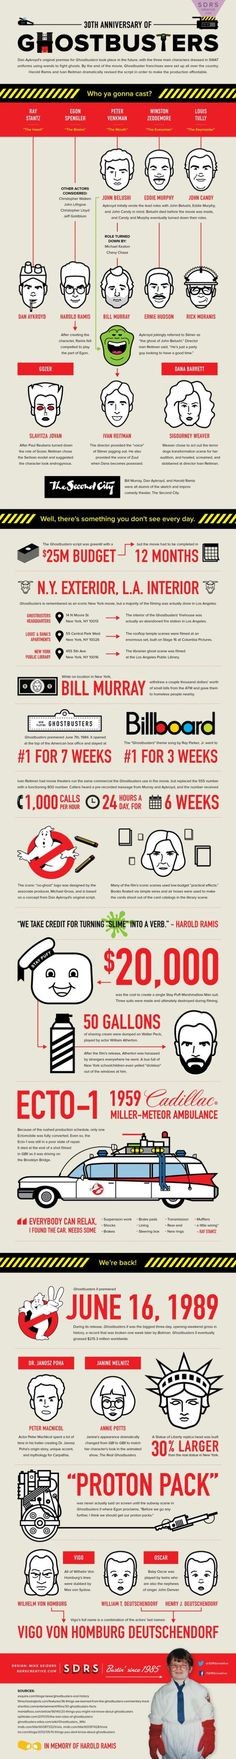 infografica ghostbusters 2